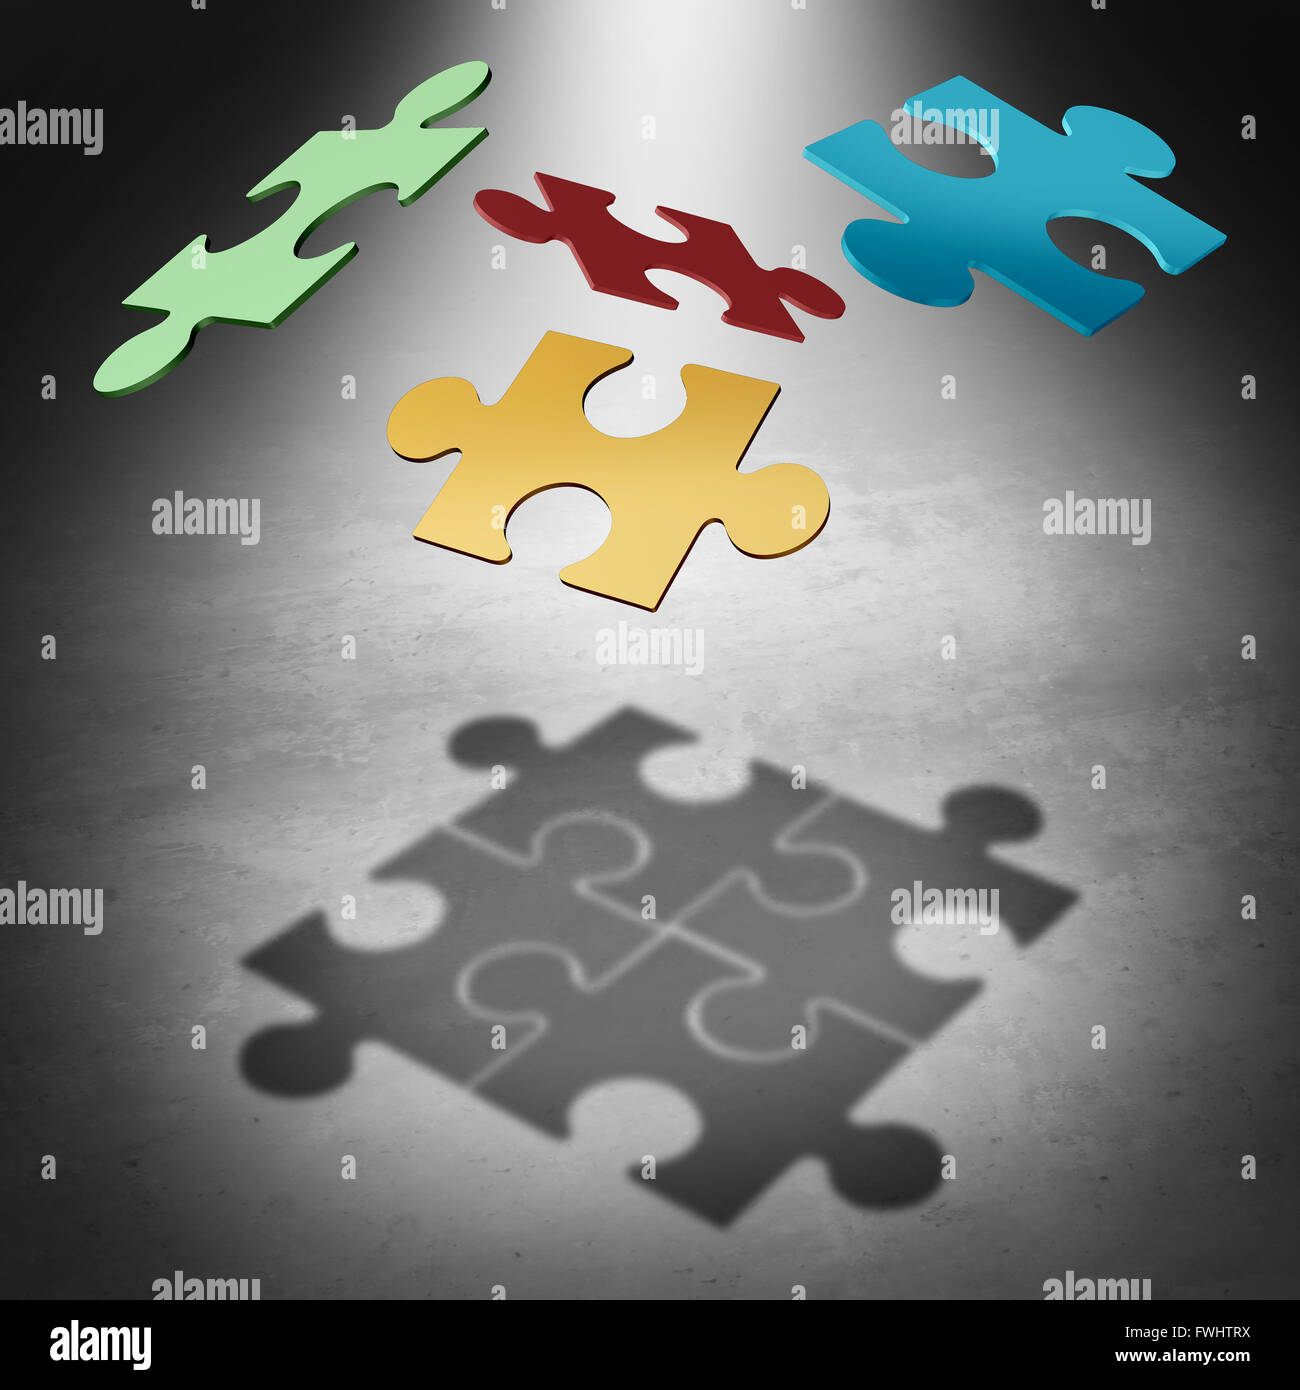 Putting the puzzle together teamwork concept as a business success symbol with four divided pieces of a jigsaw puzzle - Stock Image